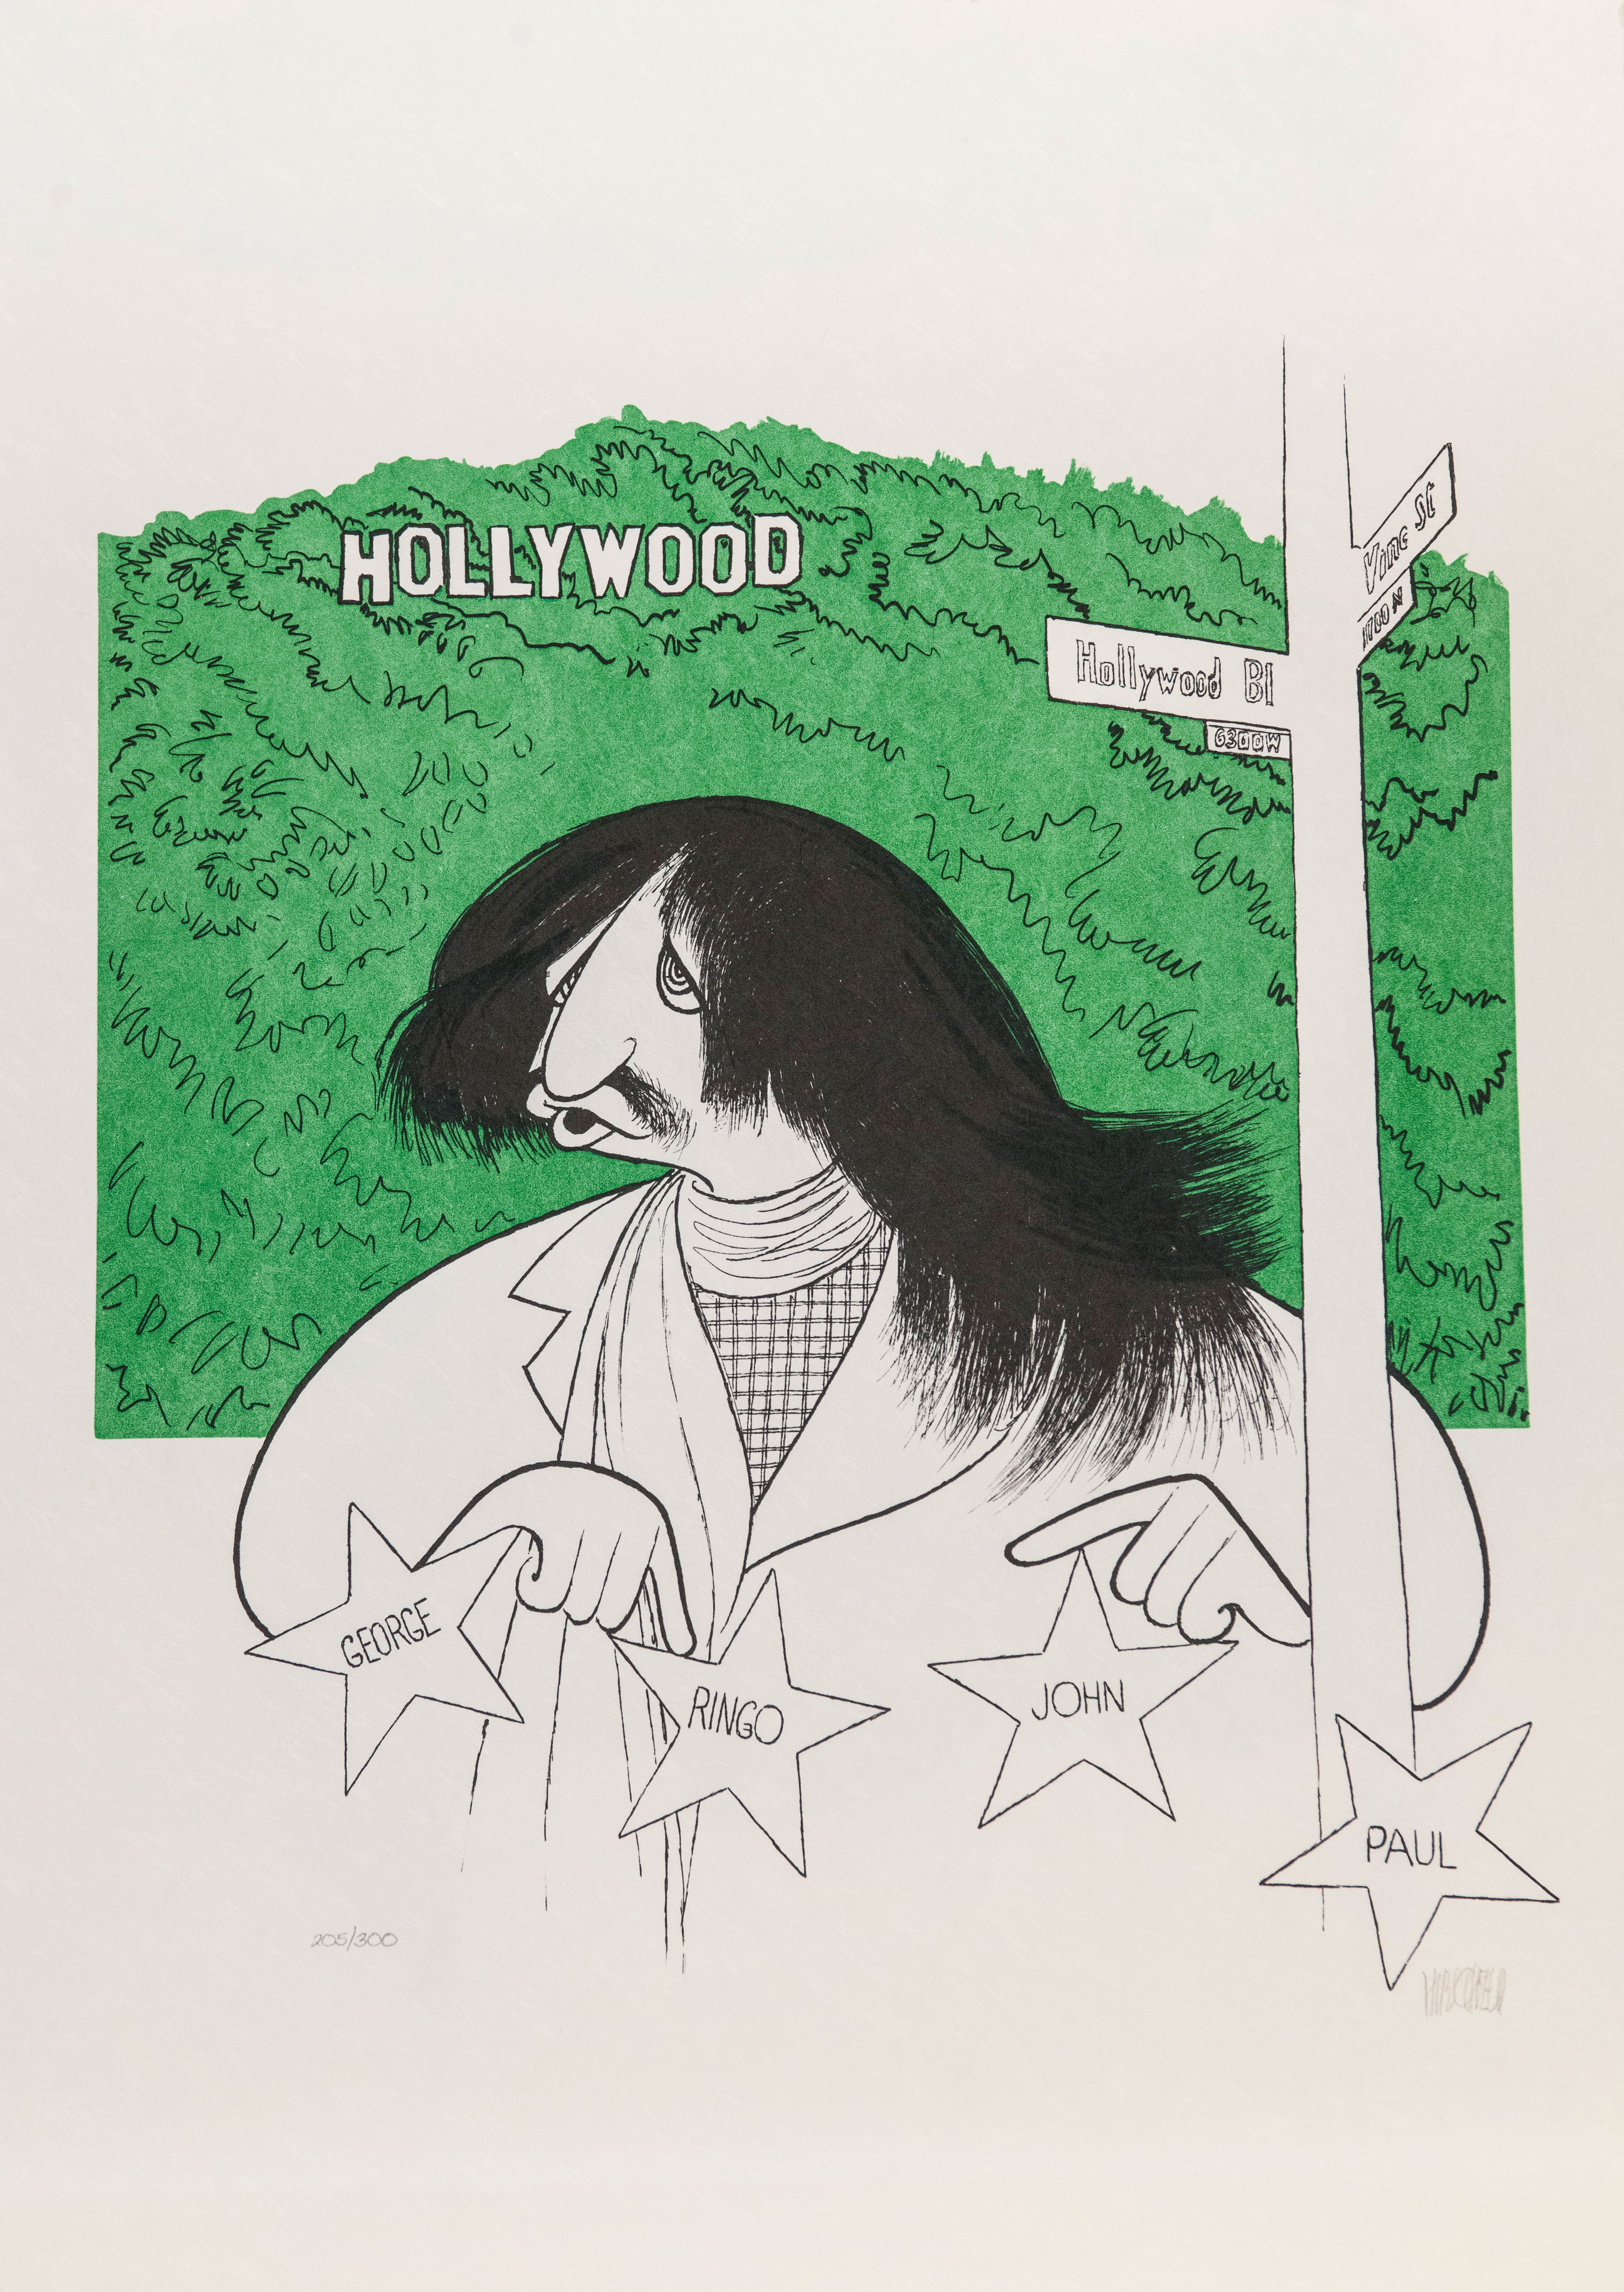 Al Hirschfeld master of line new yorker cartoon celebrity art Ringo Starr Hollywood walk of fame hollywood sign